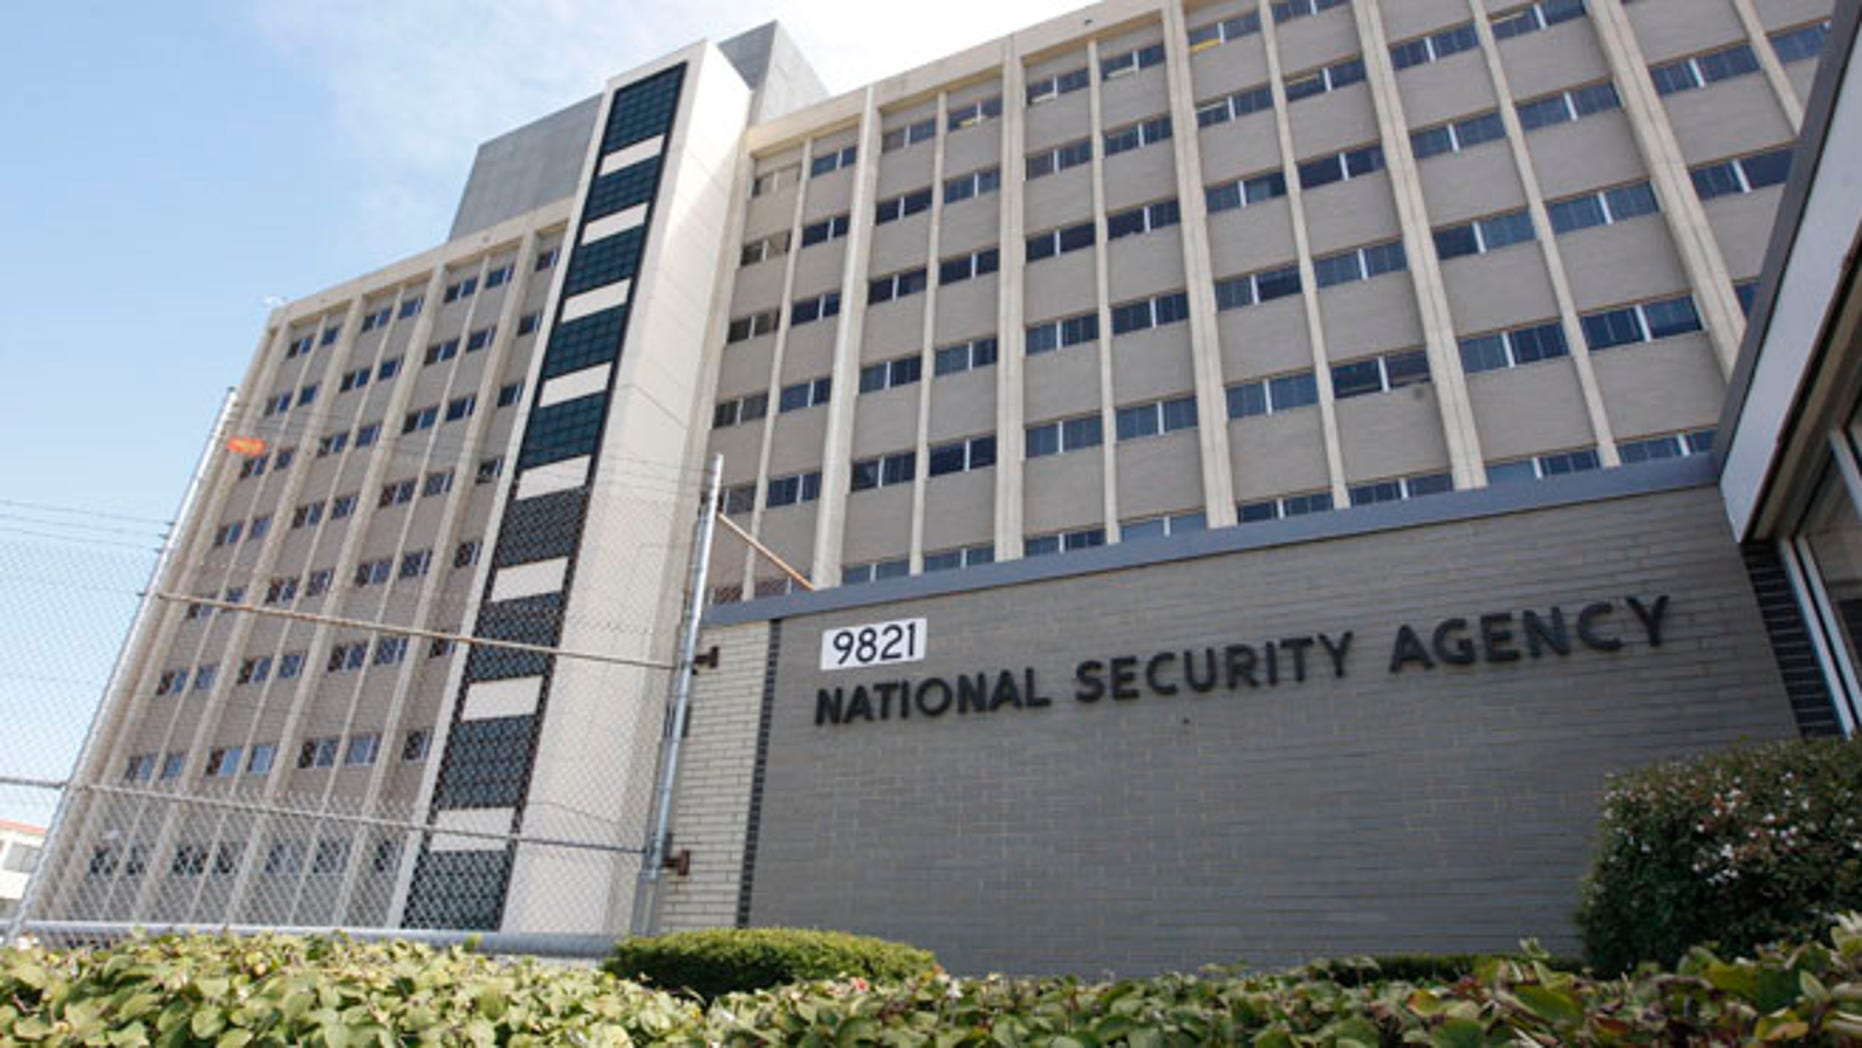 Sept. 19, 2007 file photo shows the National Security Agency building at Fort Meade, Md.